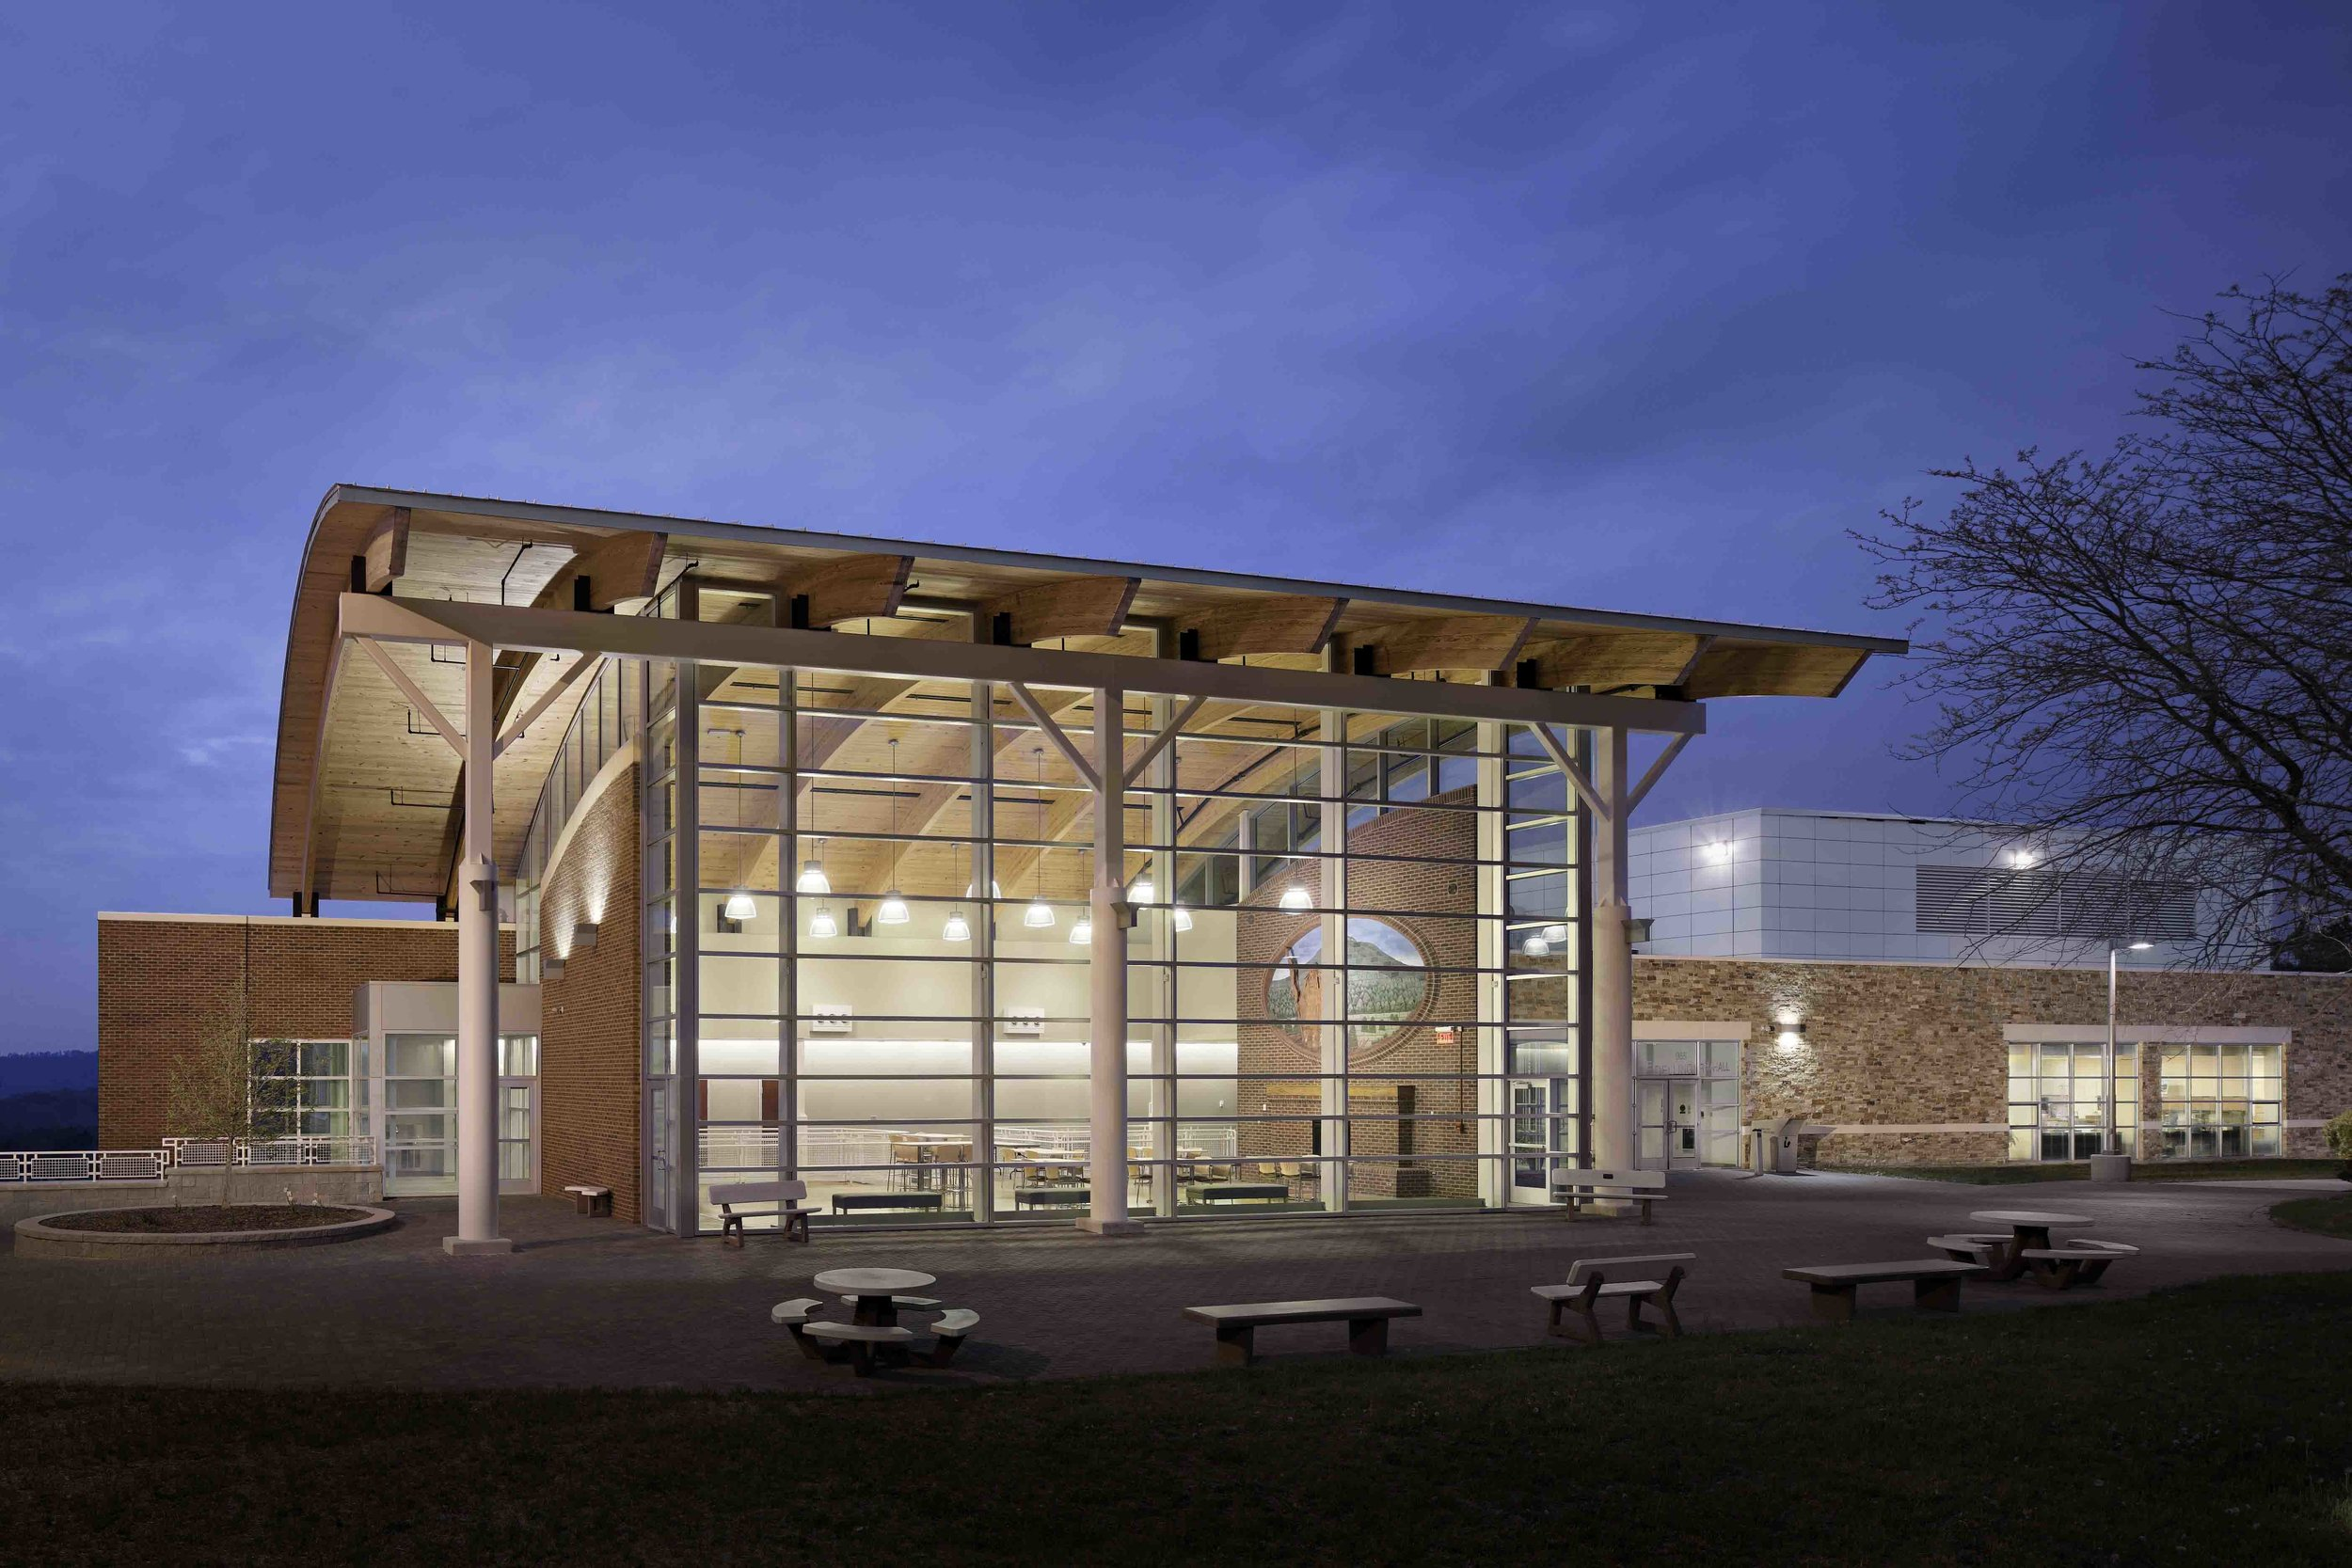 Southwest Virginia Community College Library and Distance Learning Center  Designed by The Lukmire Partnership, Inc. William E Evans, AIA Principal Designer